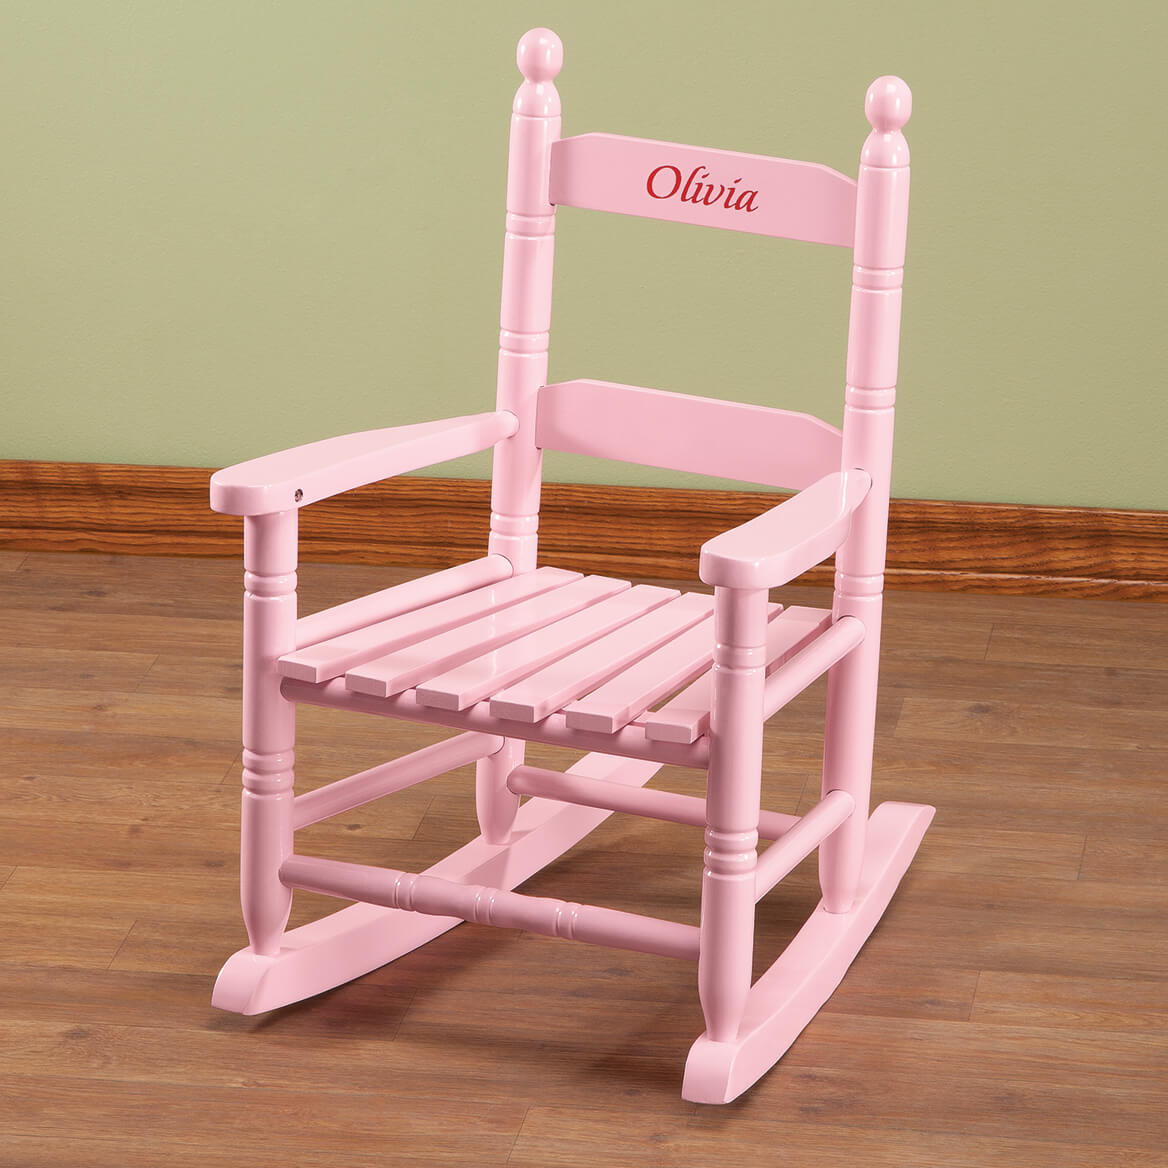 Personalized Rocking Chair for Toddlers – Miles Kimball